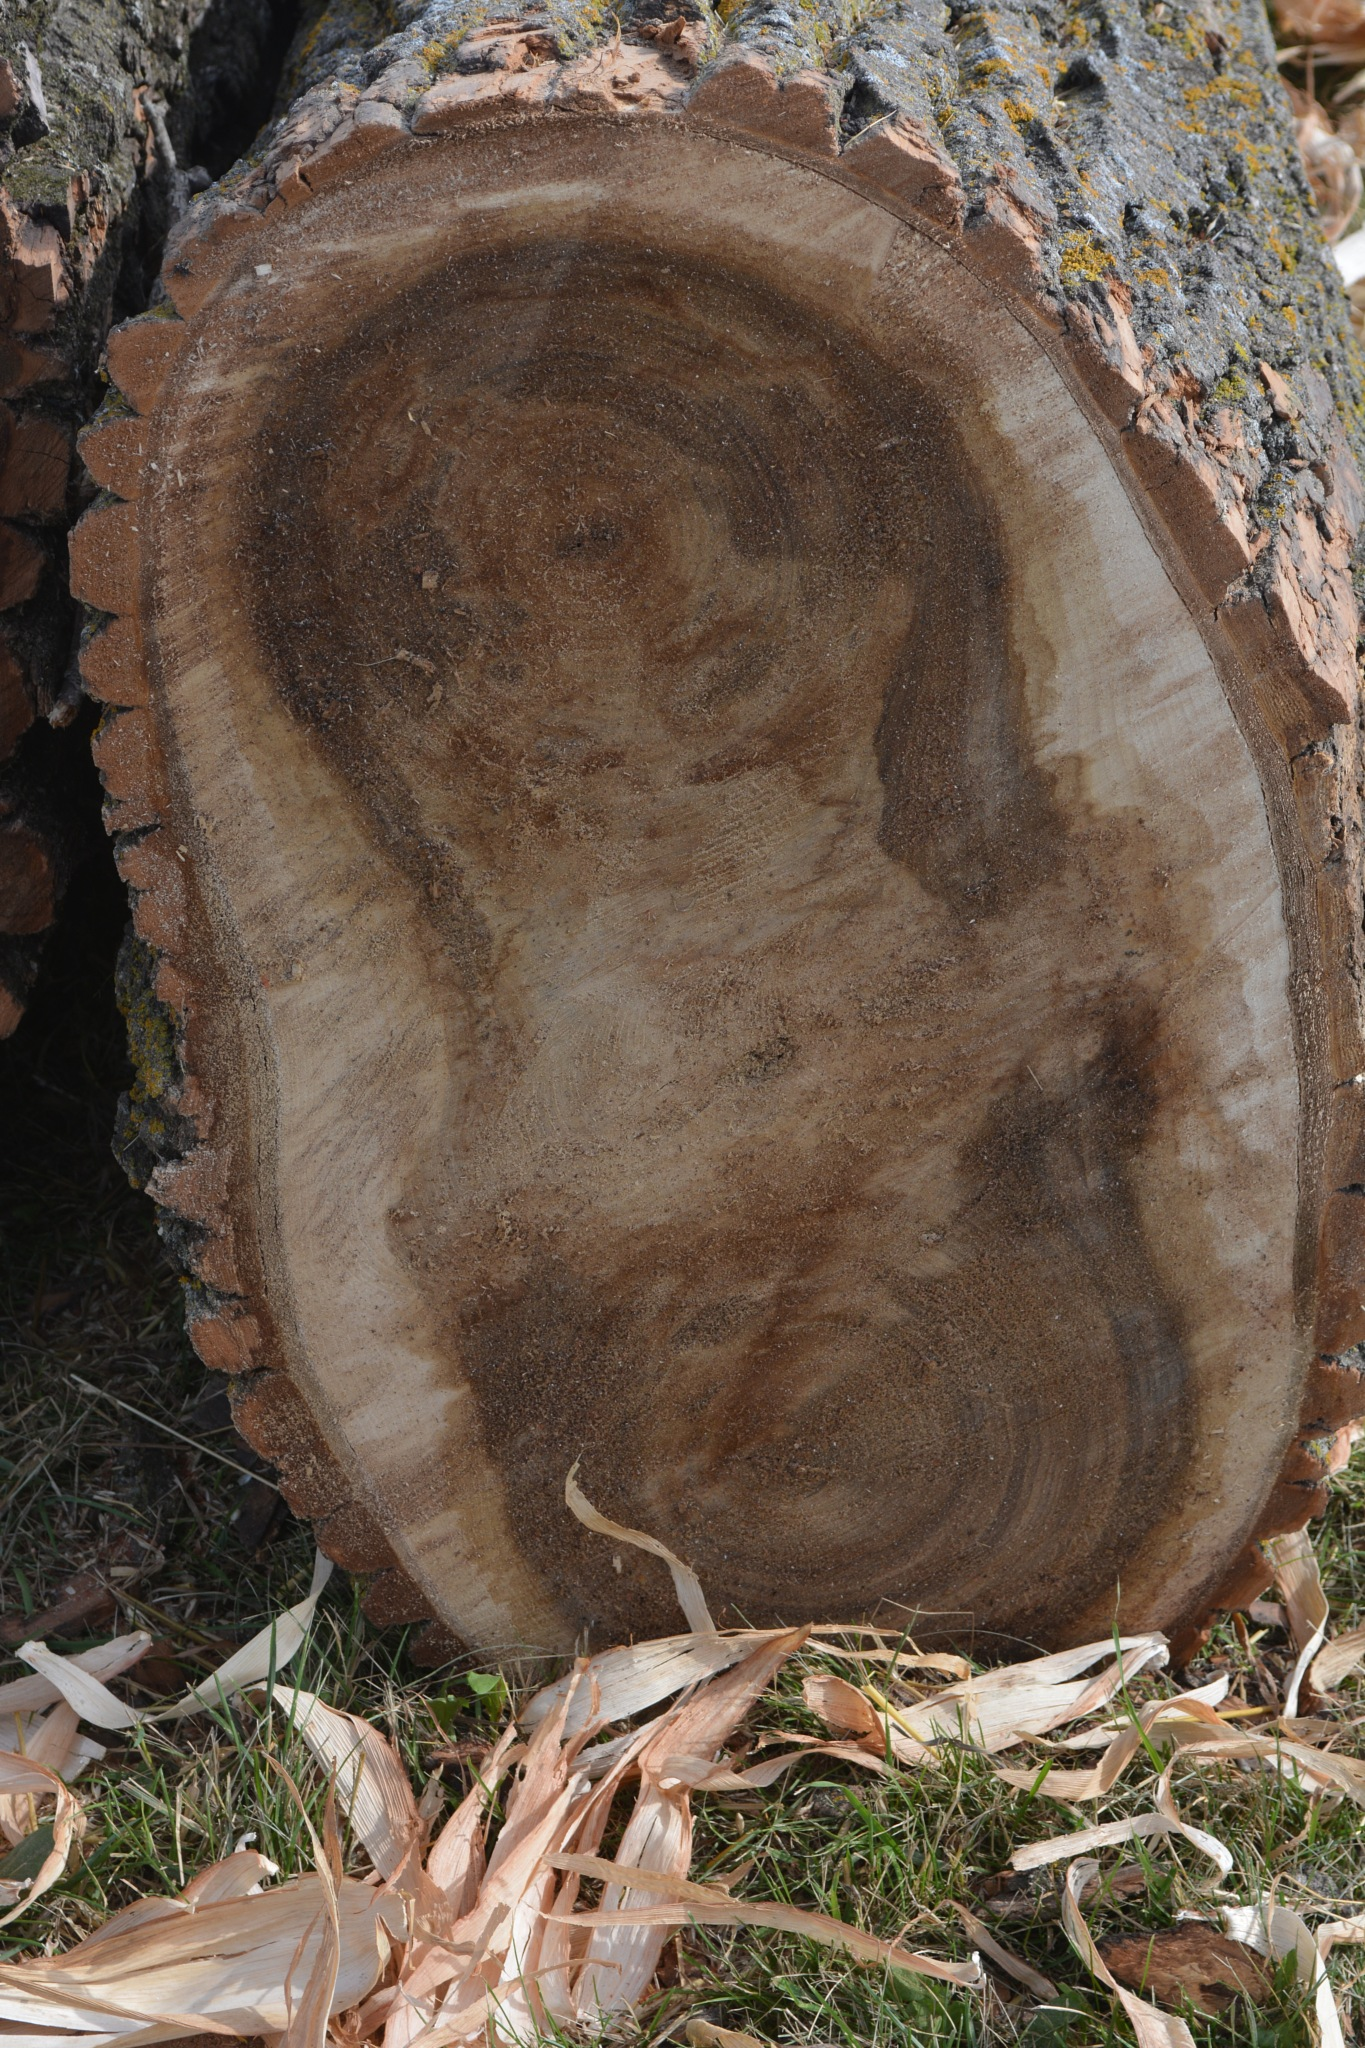 face in a log by KLN